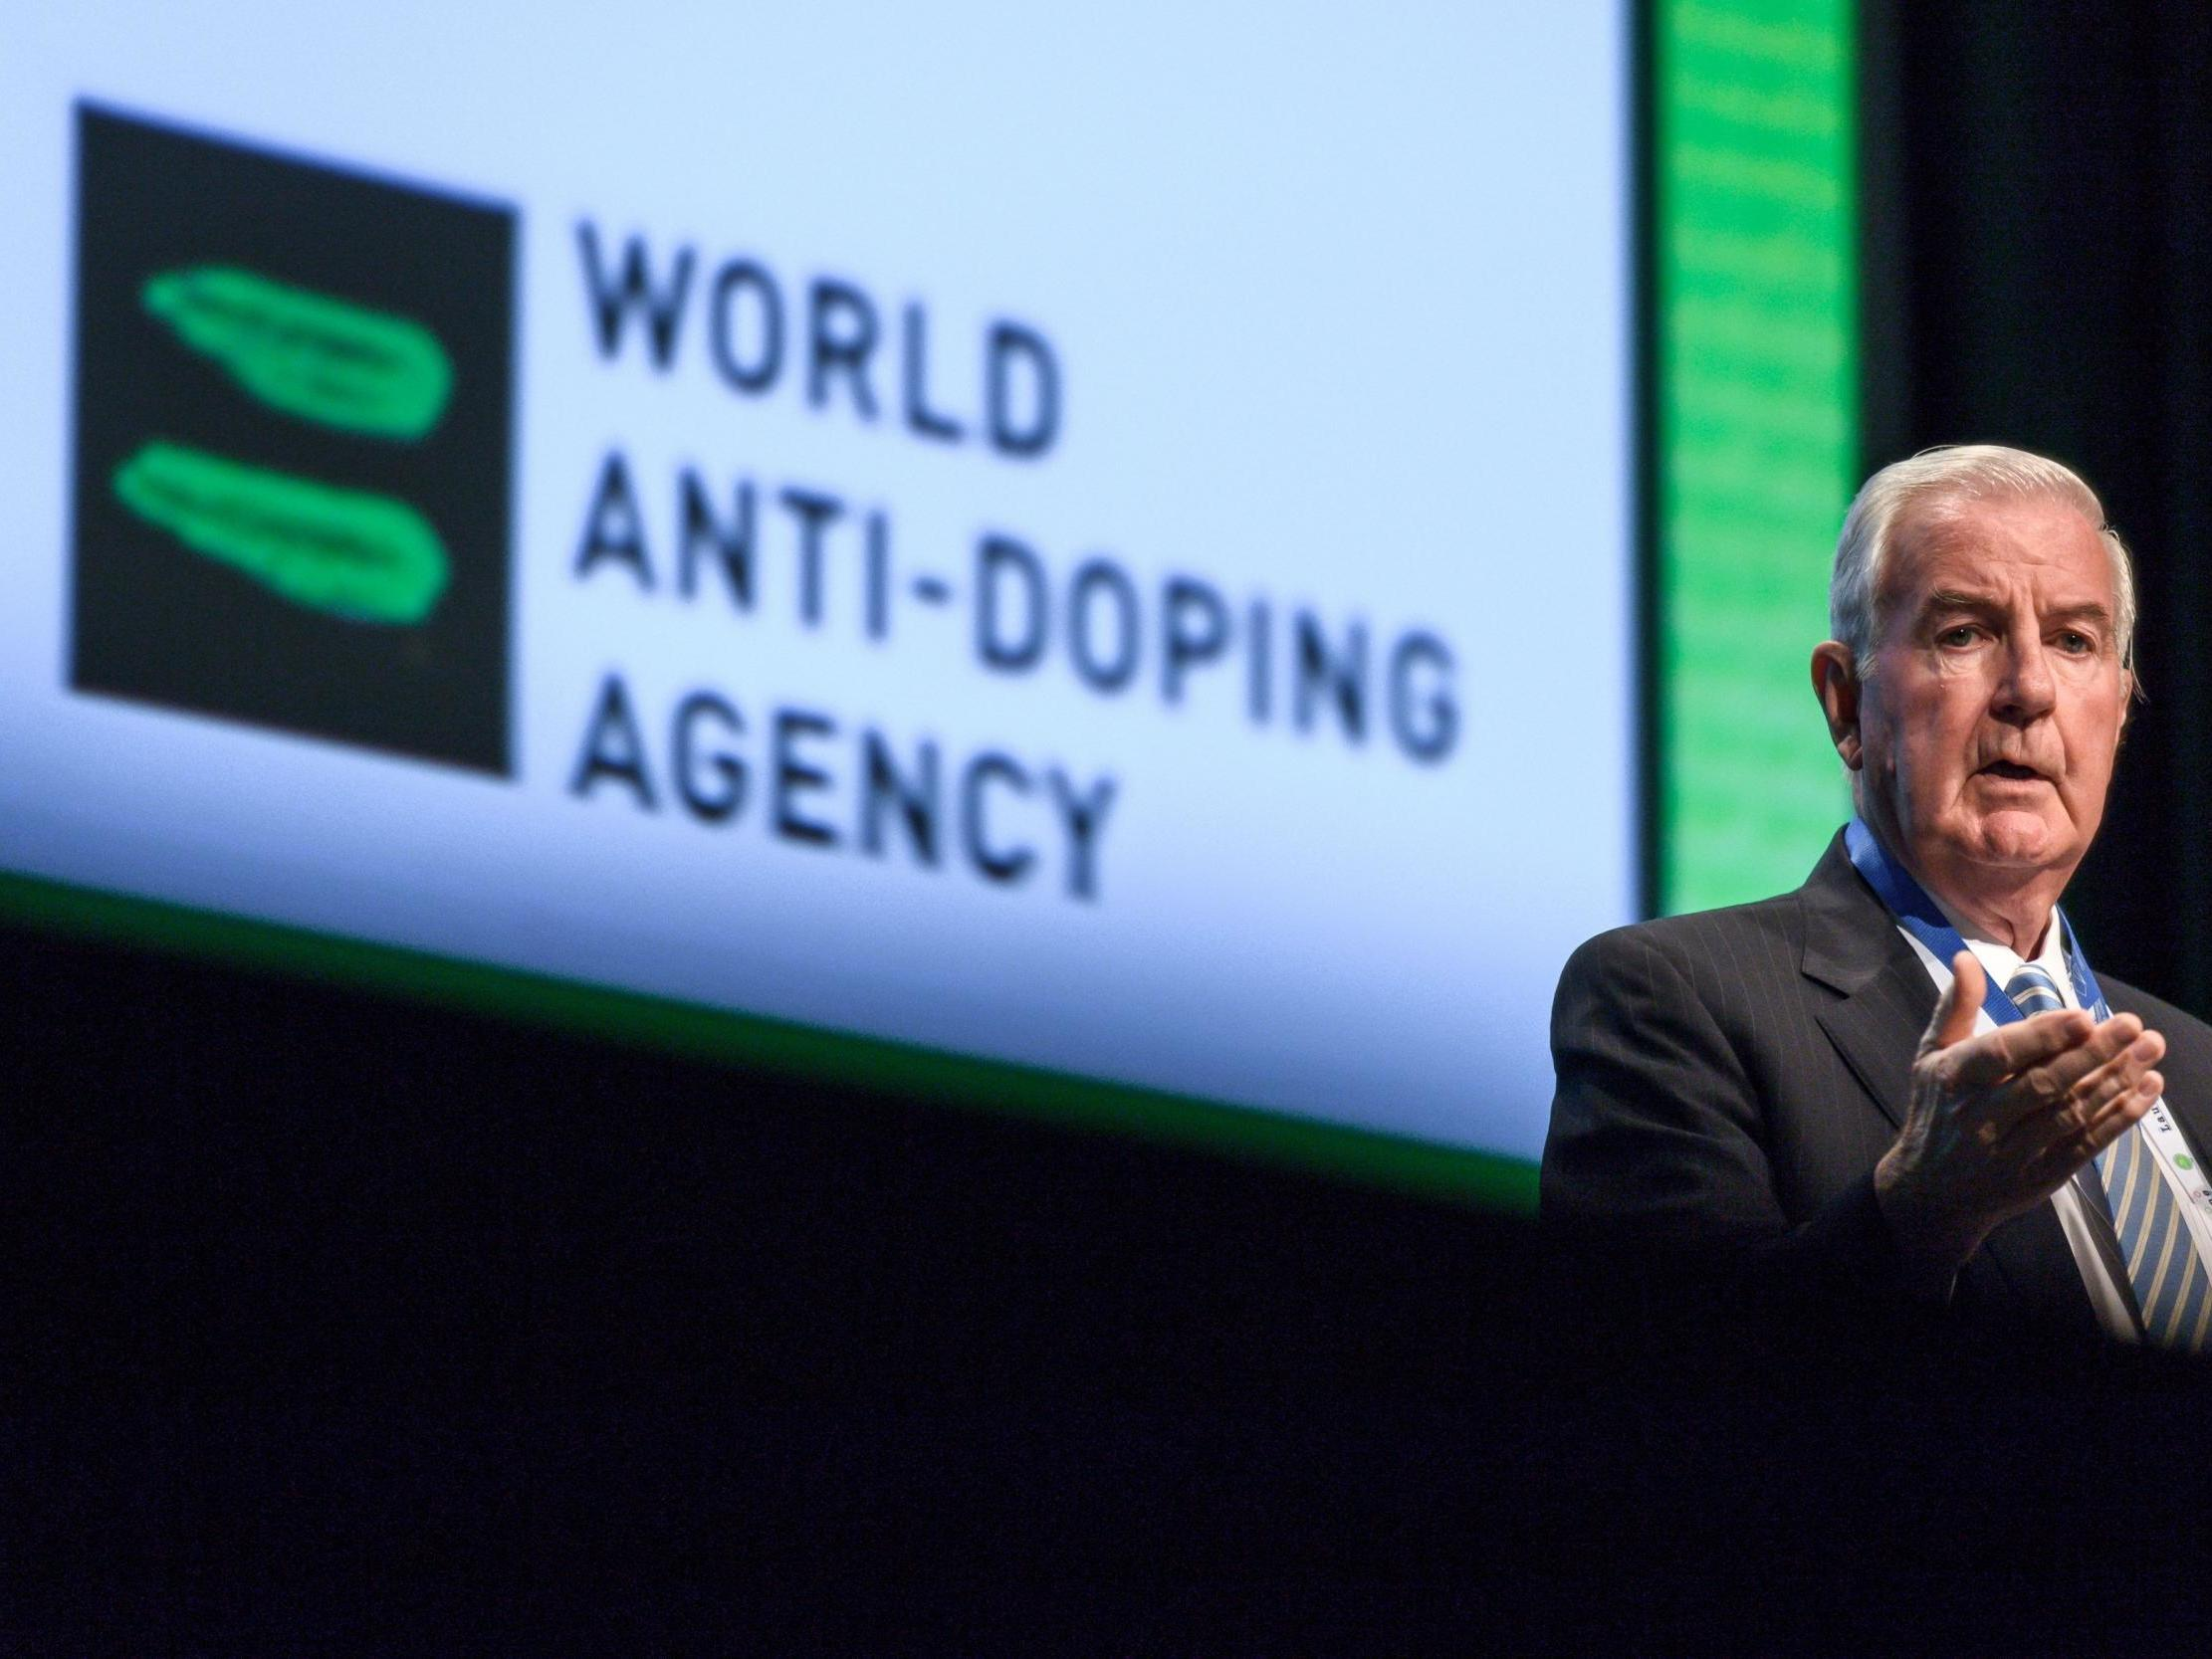 UK Anti-Doping agency calls for Wada reform after Russia controversy